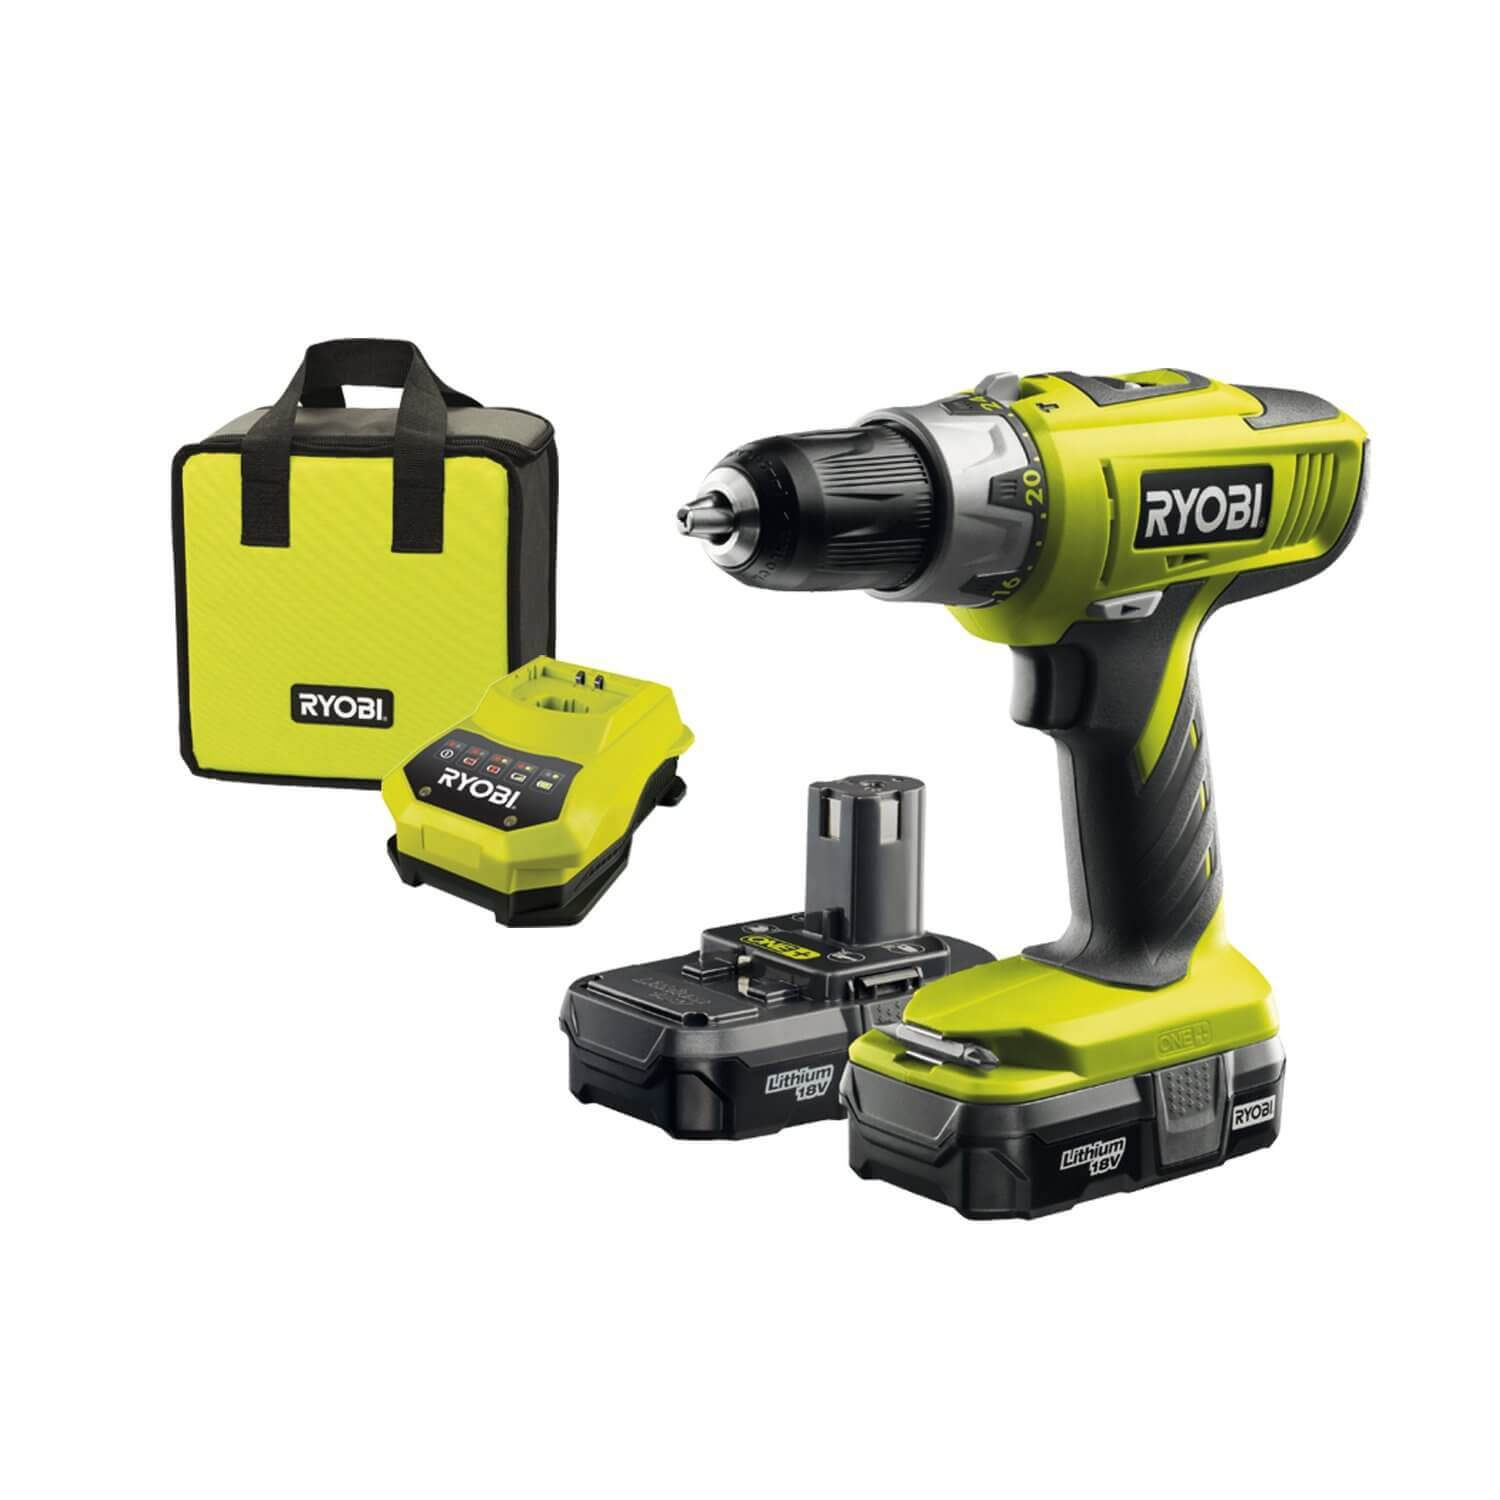 5 Best Cordless Hammer Drills Review in 2018 - Drilling Boss